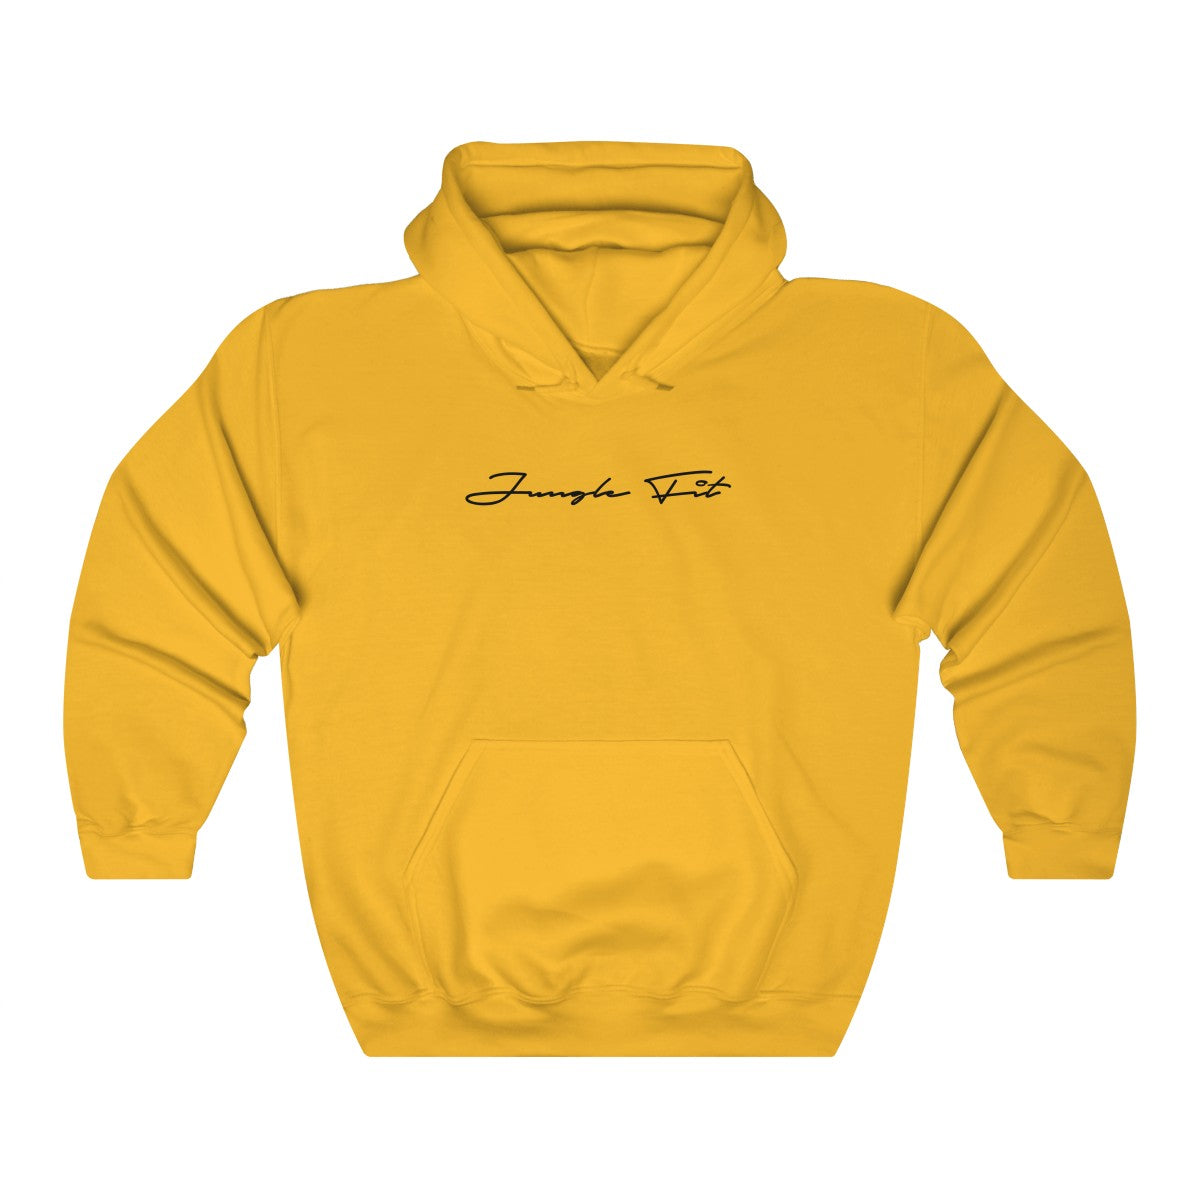 Bright Yellow Signature Hoodie